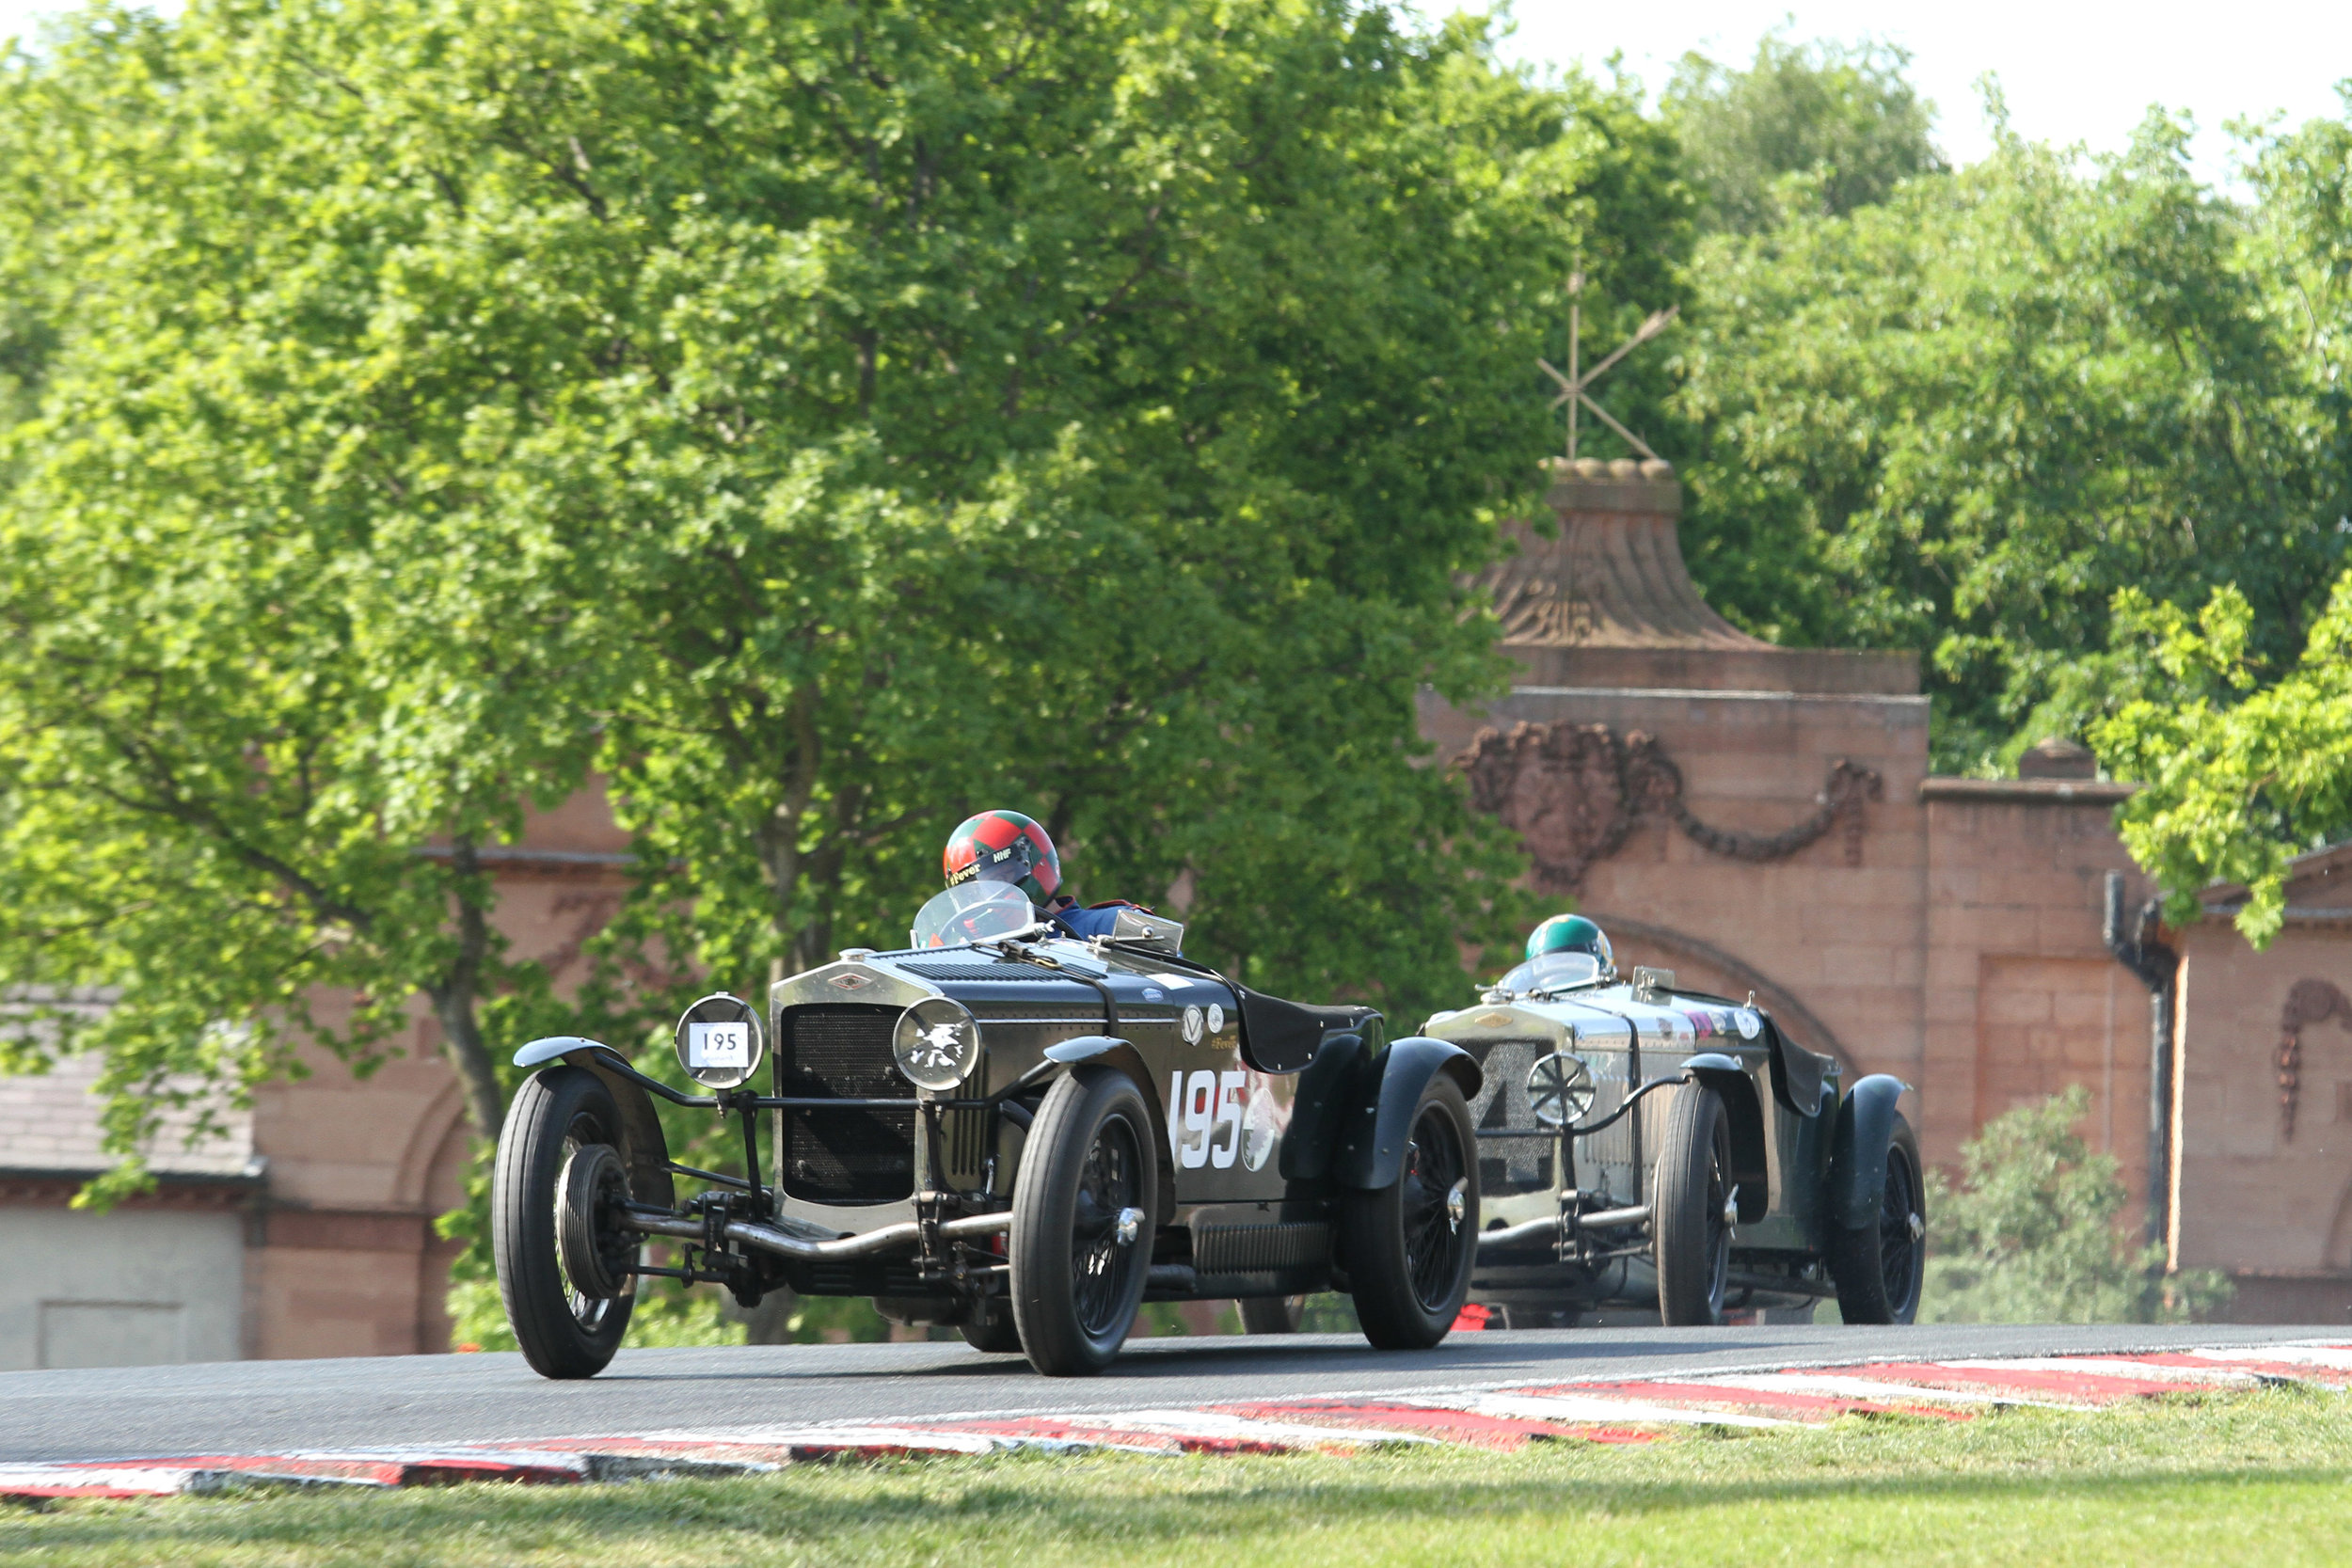 Pre-war racing features at the VSCC Formula Vintage Series meeting at Oulton Park